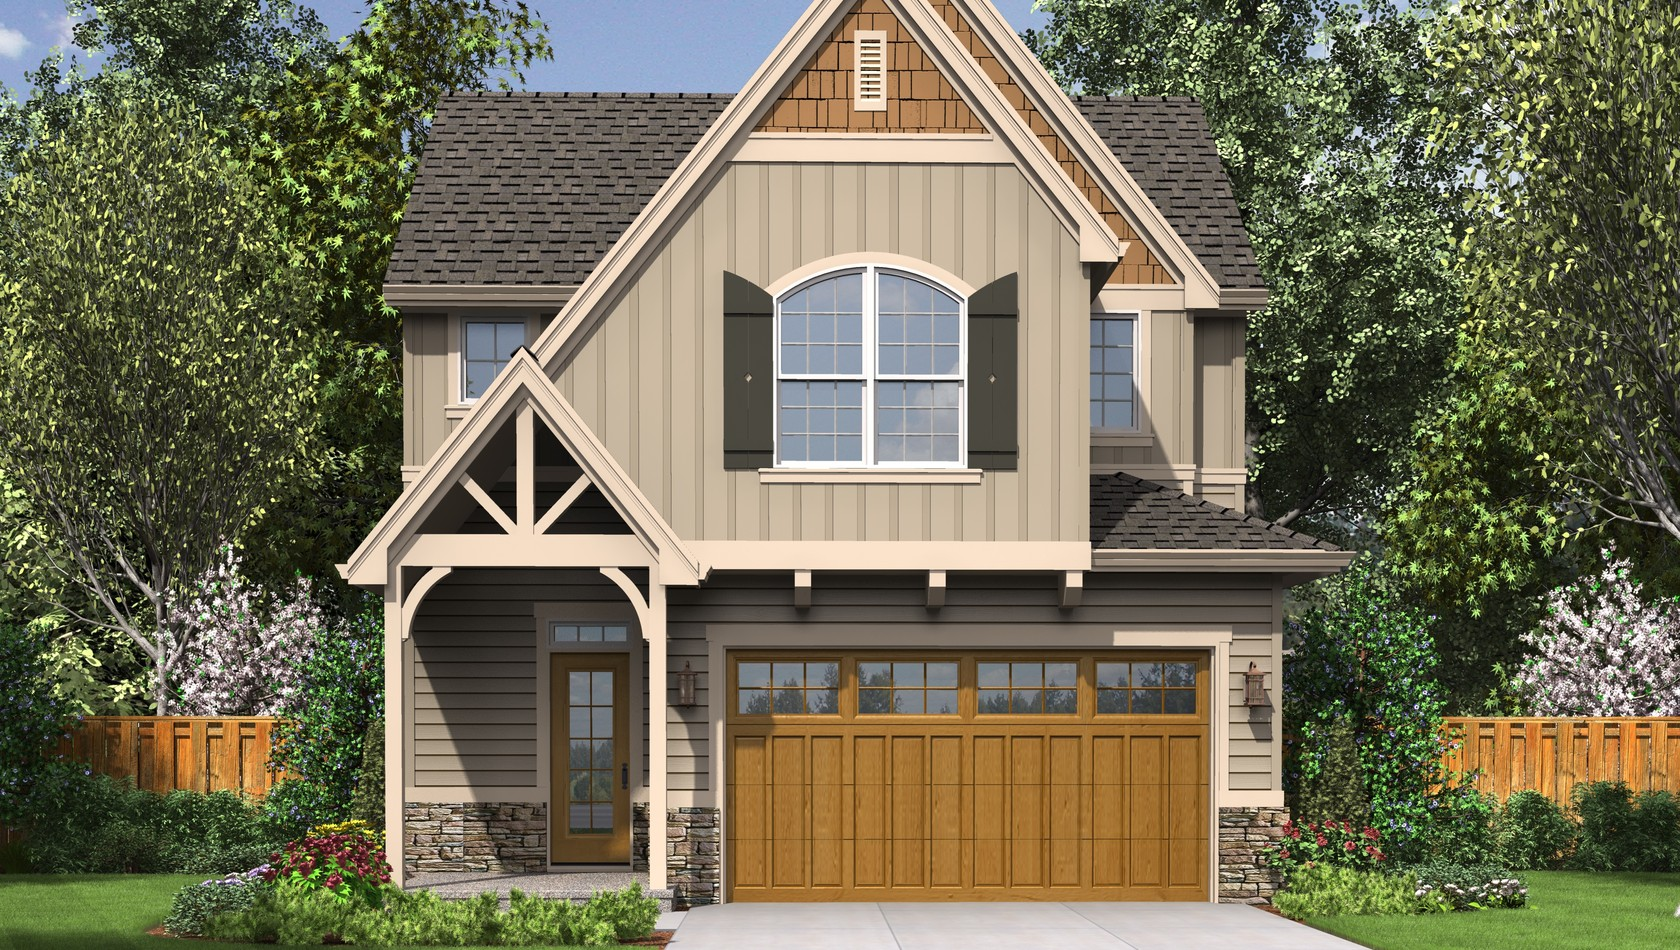 Main image for house plan 21112: The Gilmore